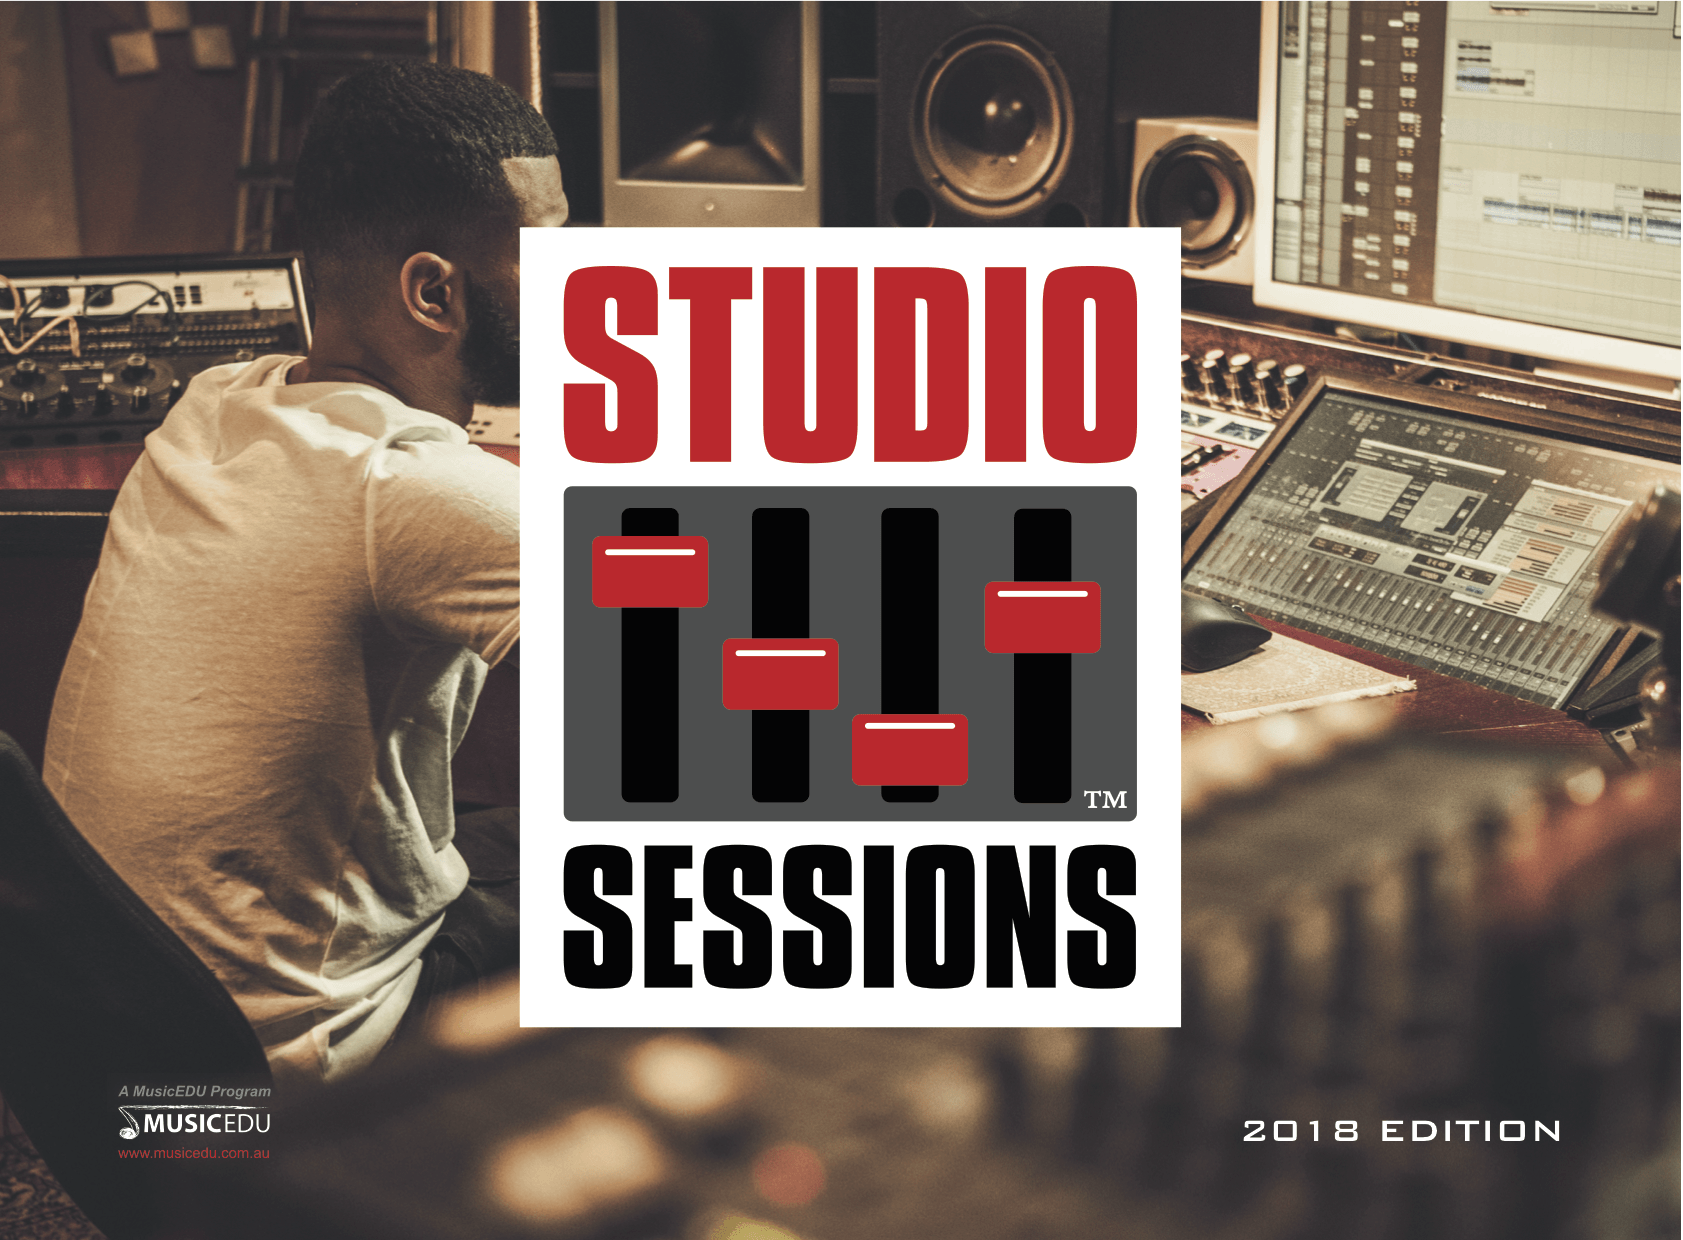 Studio Sessions competition